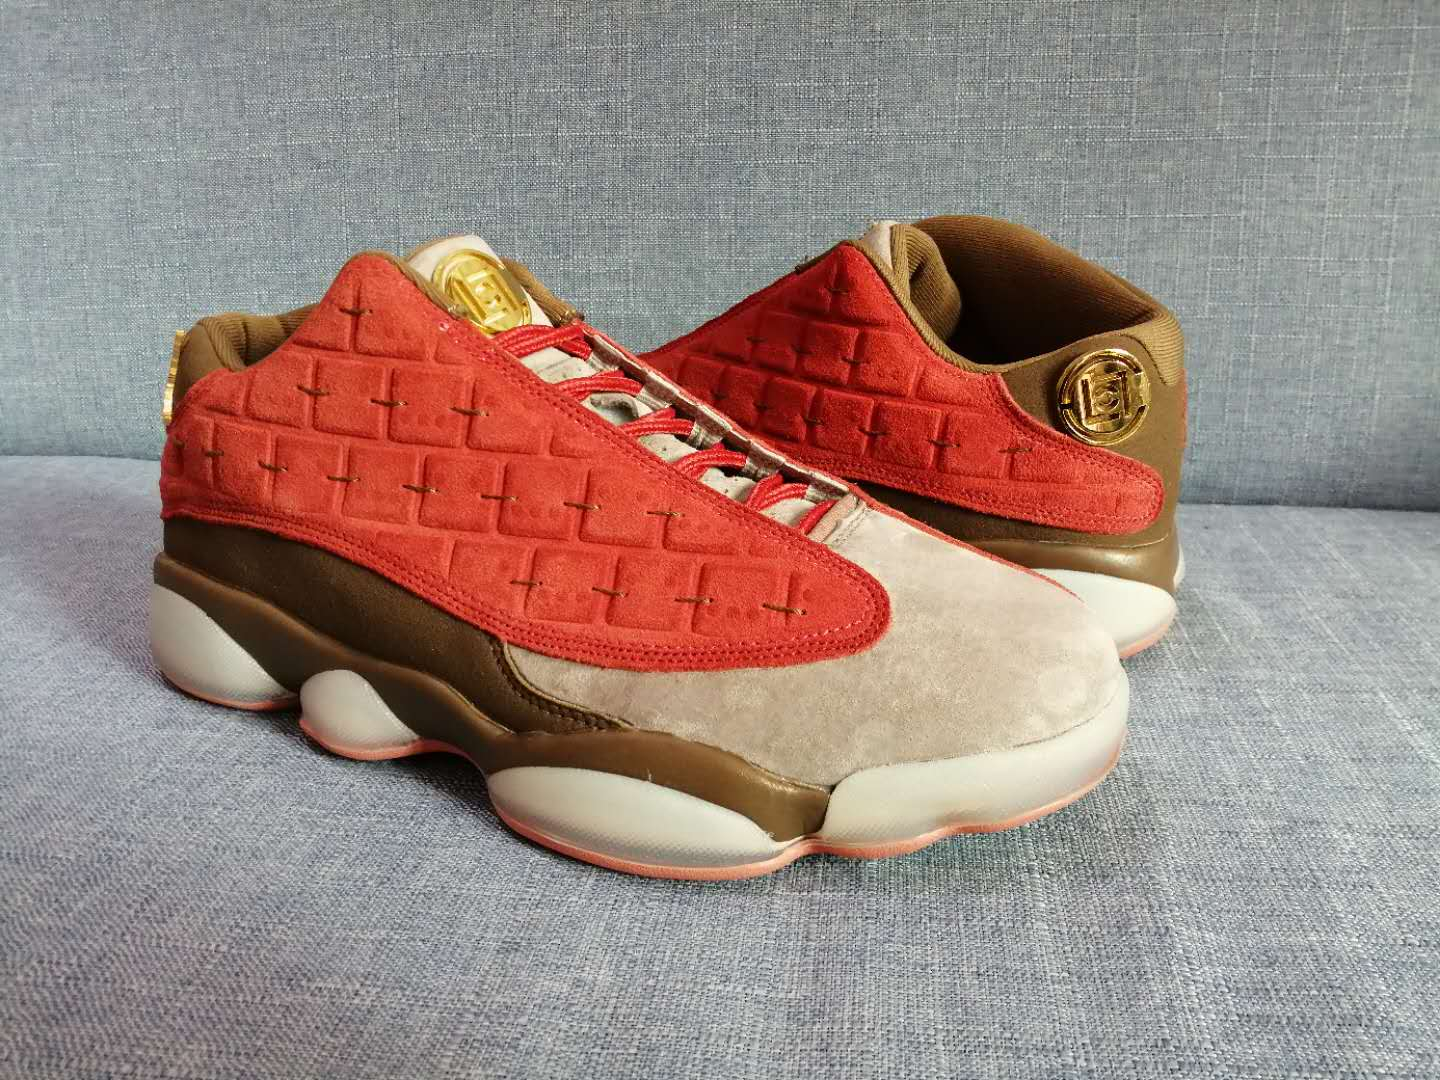 Women's Running weapon Air Jordan 13 Shoes 001